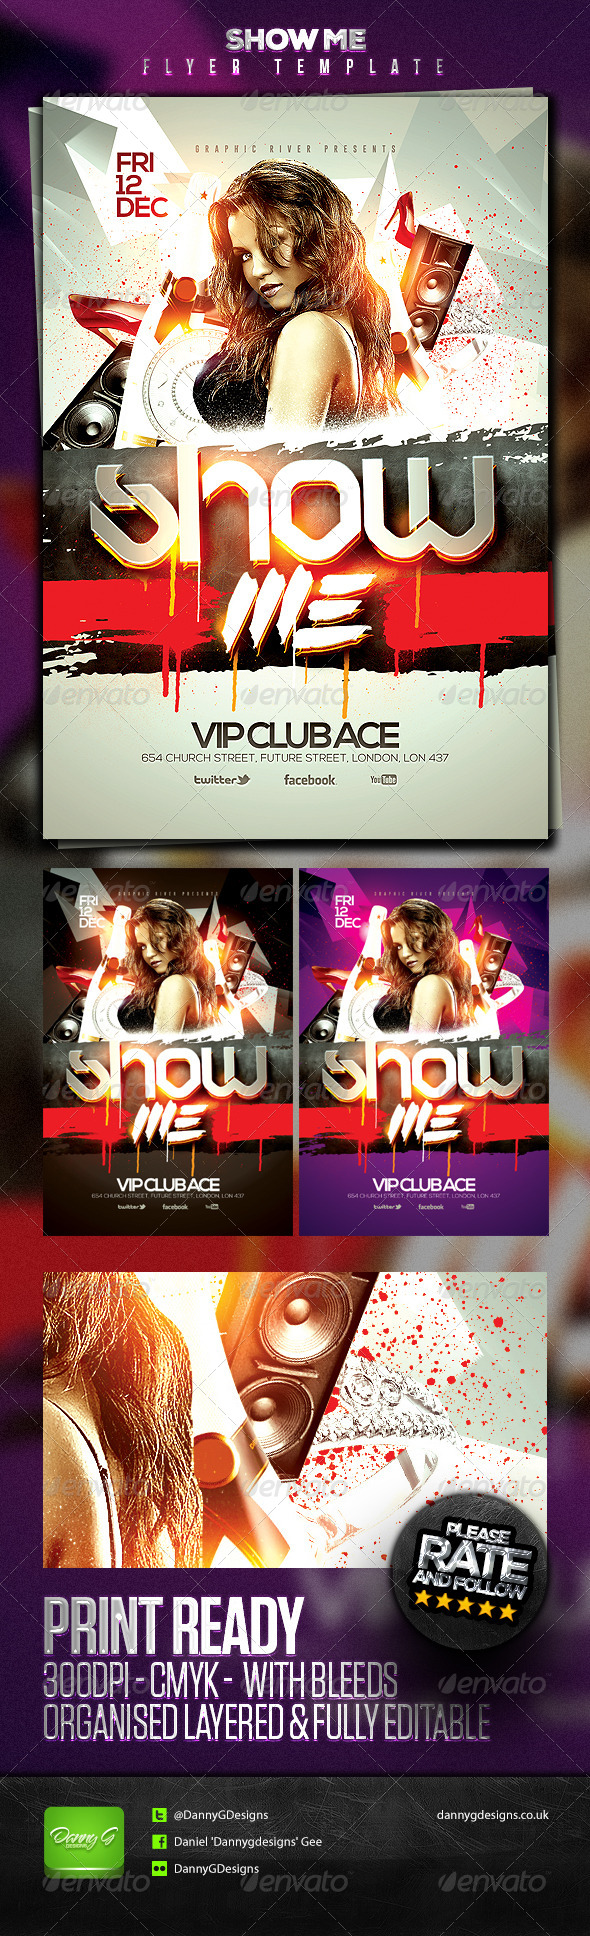 Show Me Flyer Template - Clubs & Parties Events